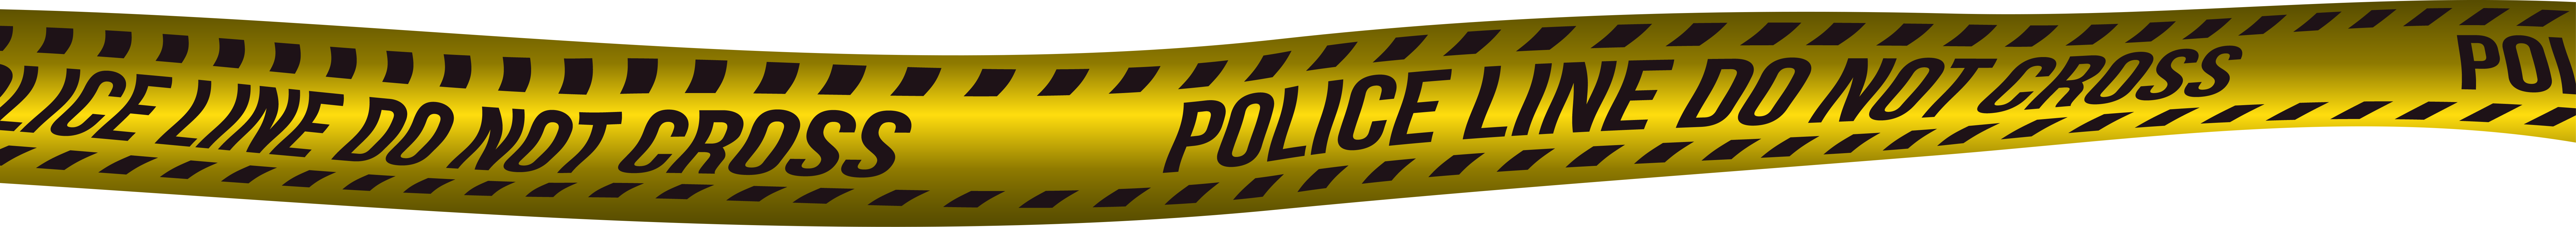 Tape images free download. Police line png jpg free stock